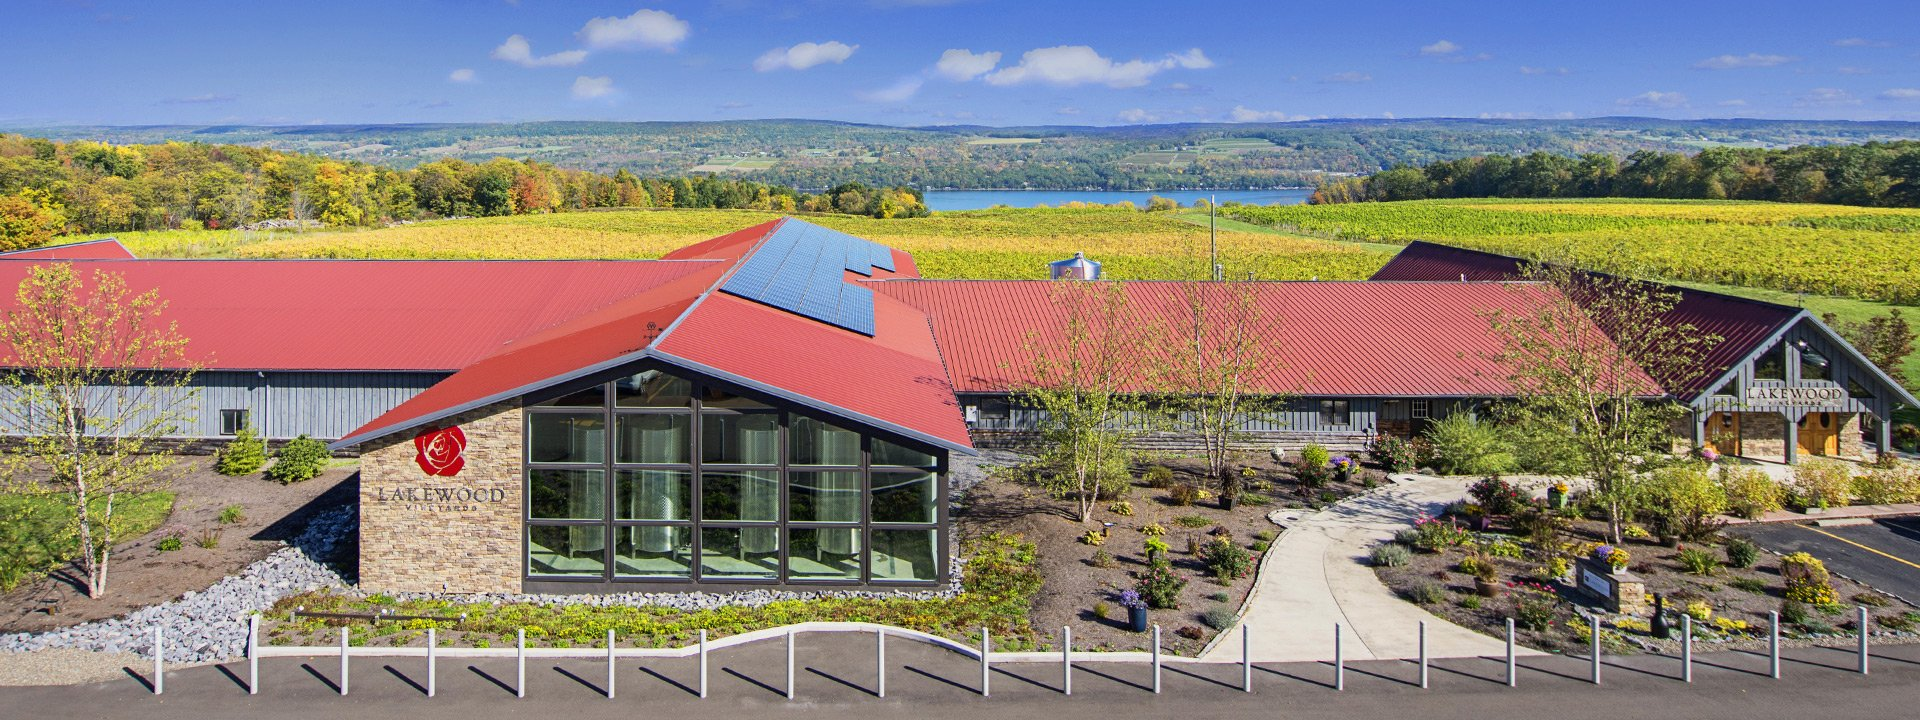 Lakewood Vineyards: Finger Lakes Wine Tastings